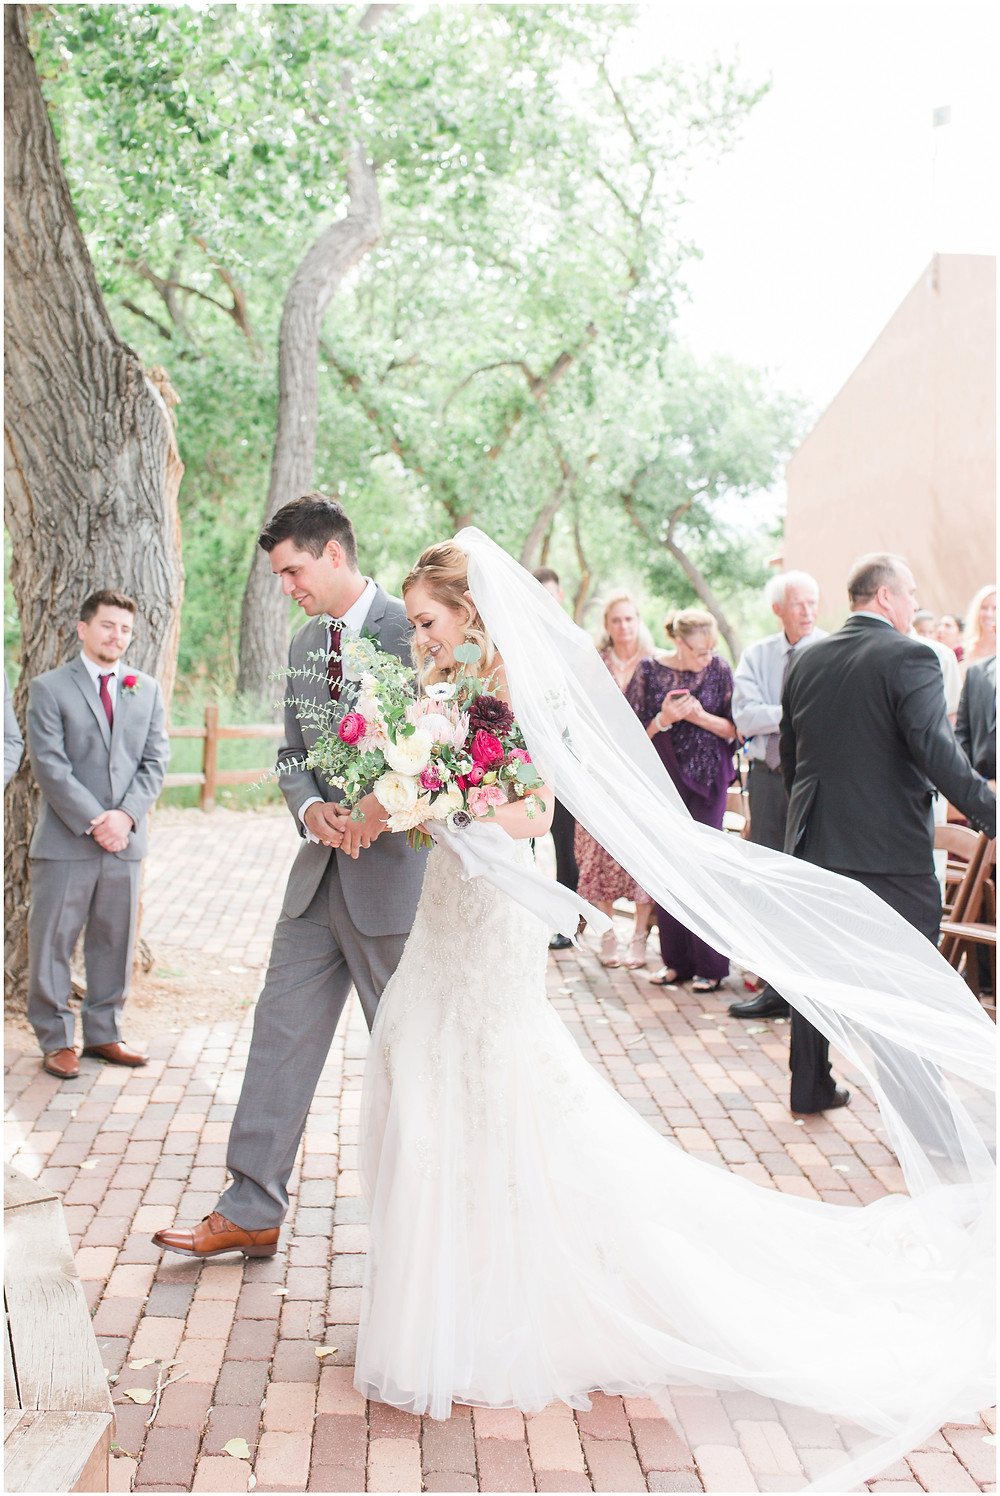 Wedding at Hyatt Tamaya. Outdoor wedding New Mexco. New Mexico Wedding photographer. maura Jane photography. burgundy wedding. outdoor ceremony.